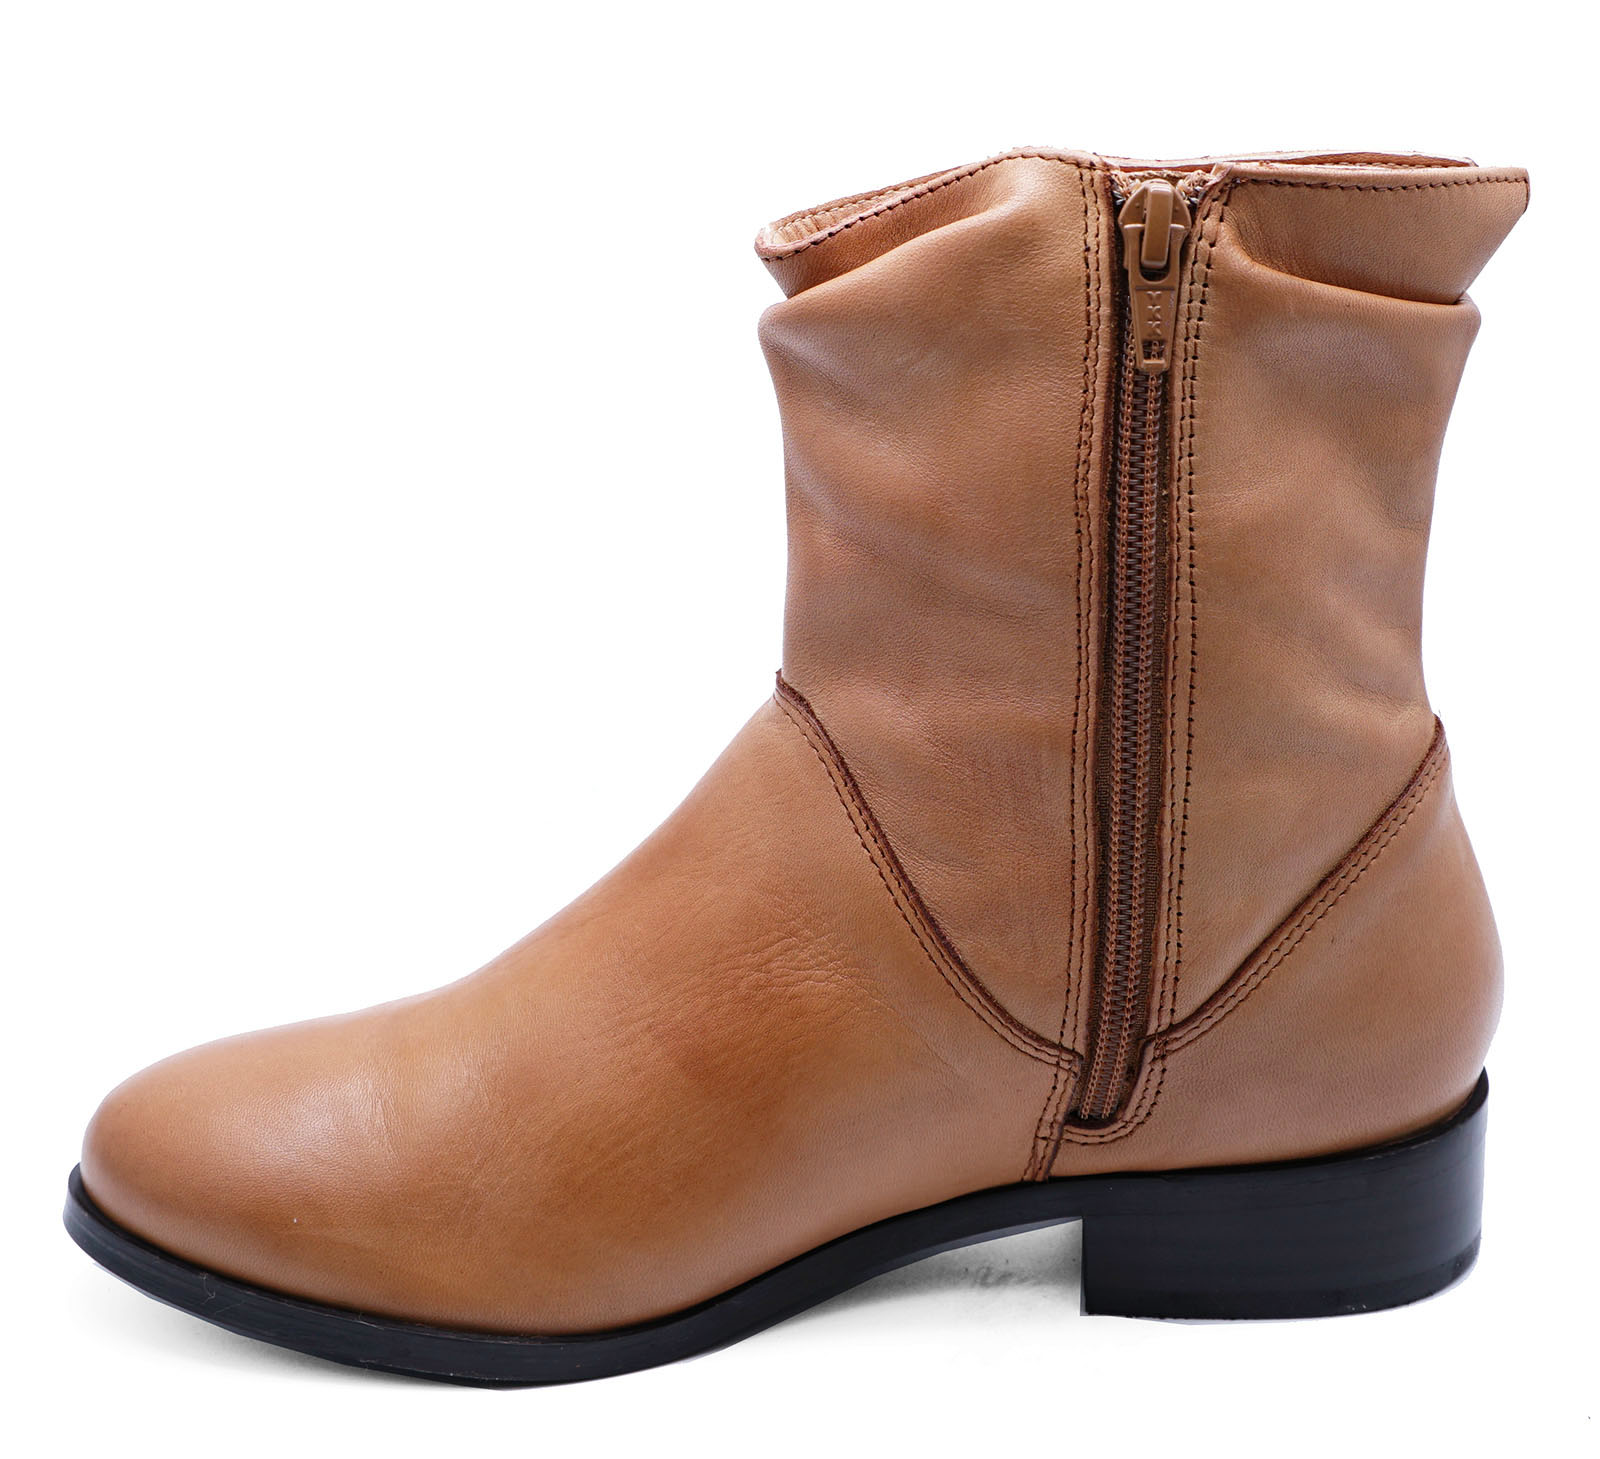 LADIES-FLAT-GENUINE-LEATHER-TAN-ZIP-UP-ANKLE-CALF-BOOTS-COMFY-SHOES-SIZES-2-9 thumbnail 33